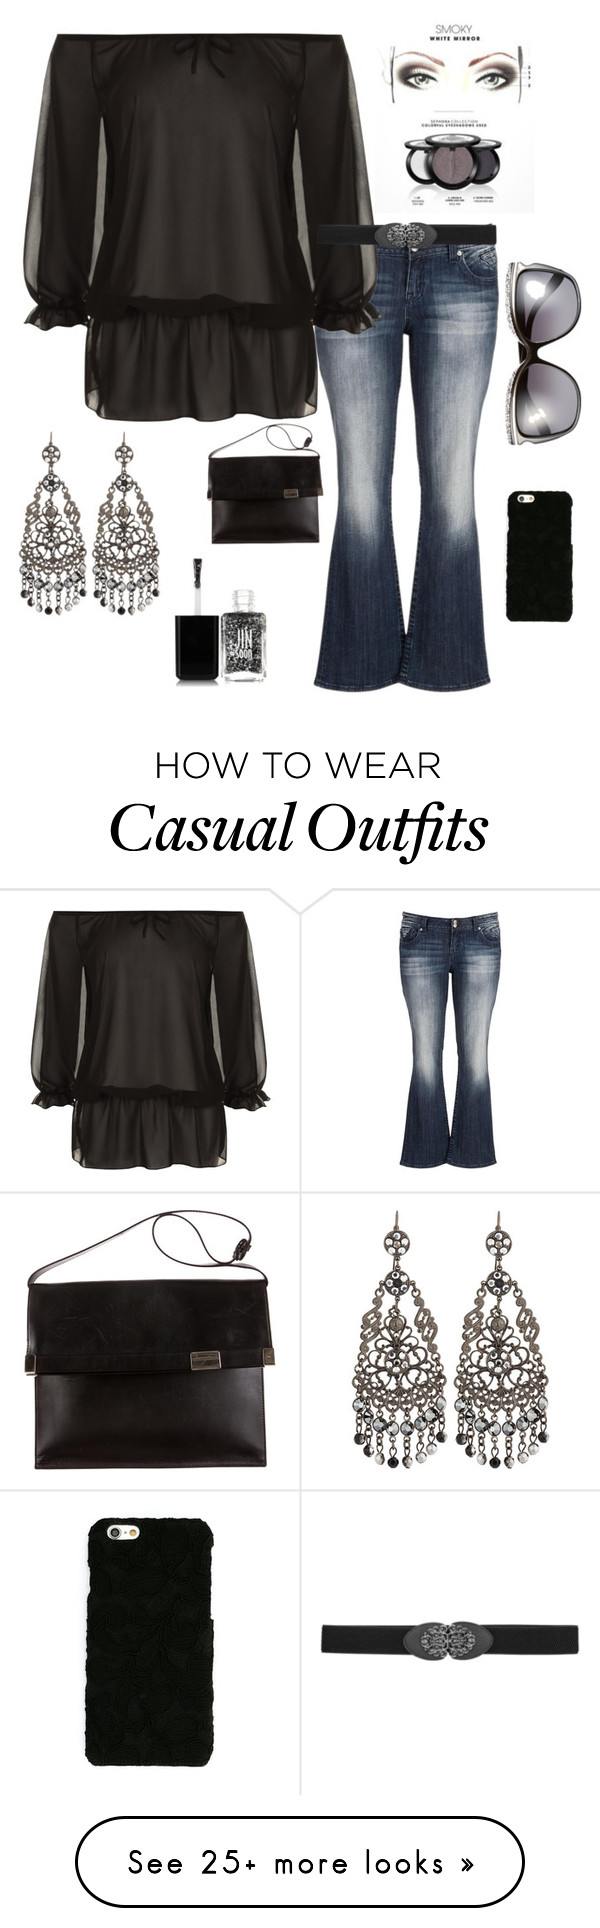 """""""Casual Date night"""" by im-karla-with-a-k on Polyvore featuring maurices, WearAll, Jose & Maria Barrera, Dolce&Gabbana, JINsoon, Maison Margiela, women's clothing, women's fashion, women and female"""